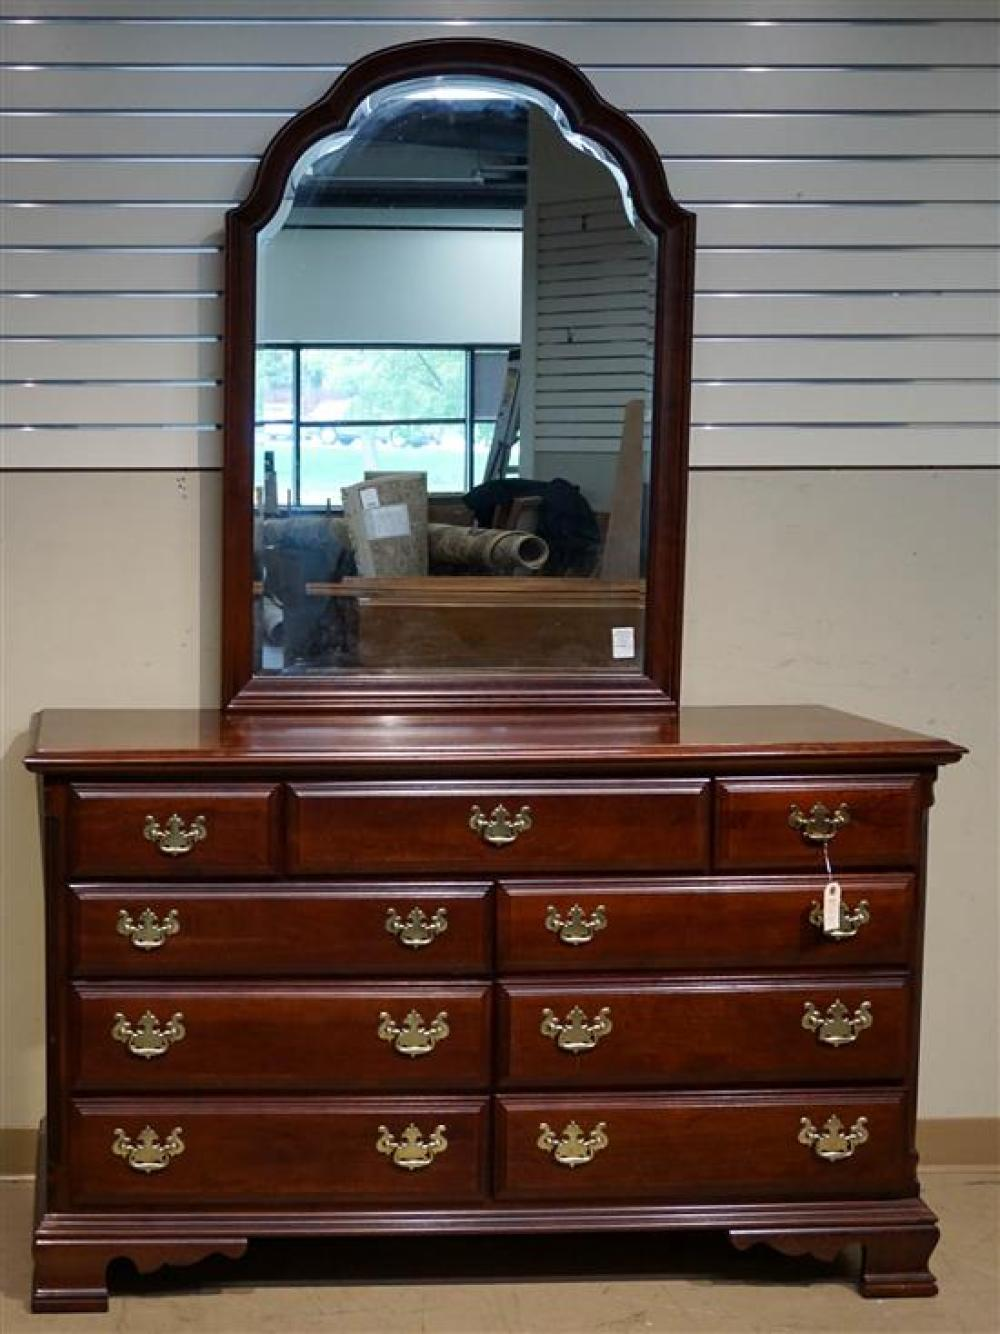 Chippendale Style Cherry Queen Bed, Dresser with Mirror and a Chest of Drawers by Pennsylvania House